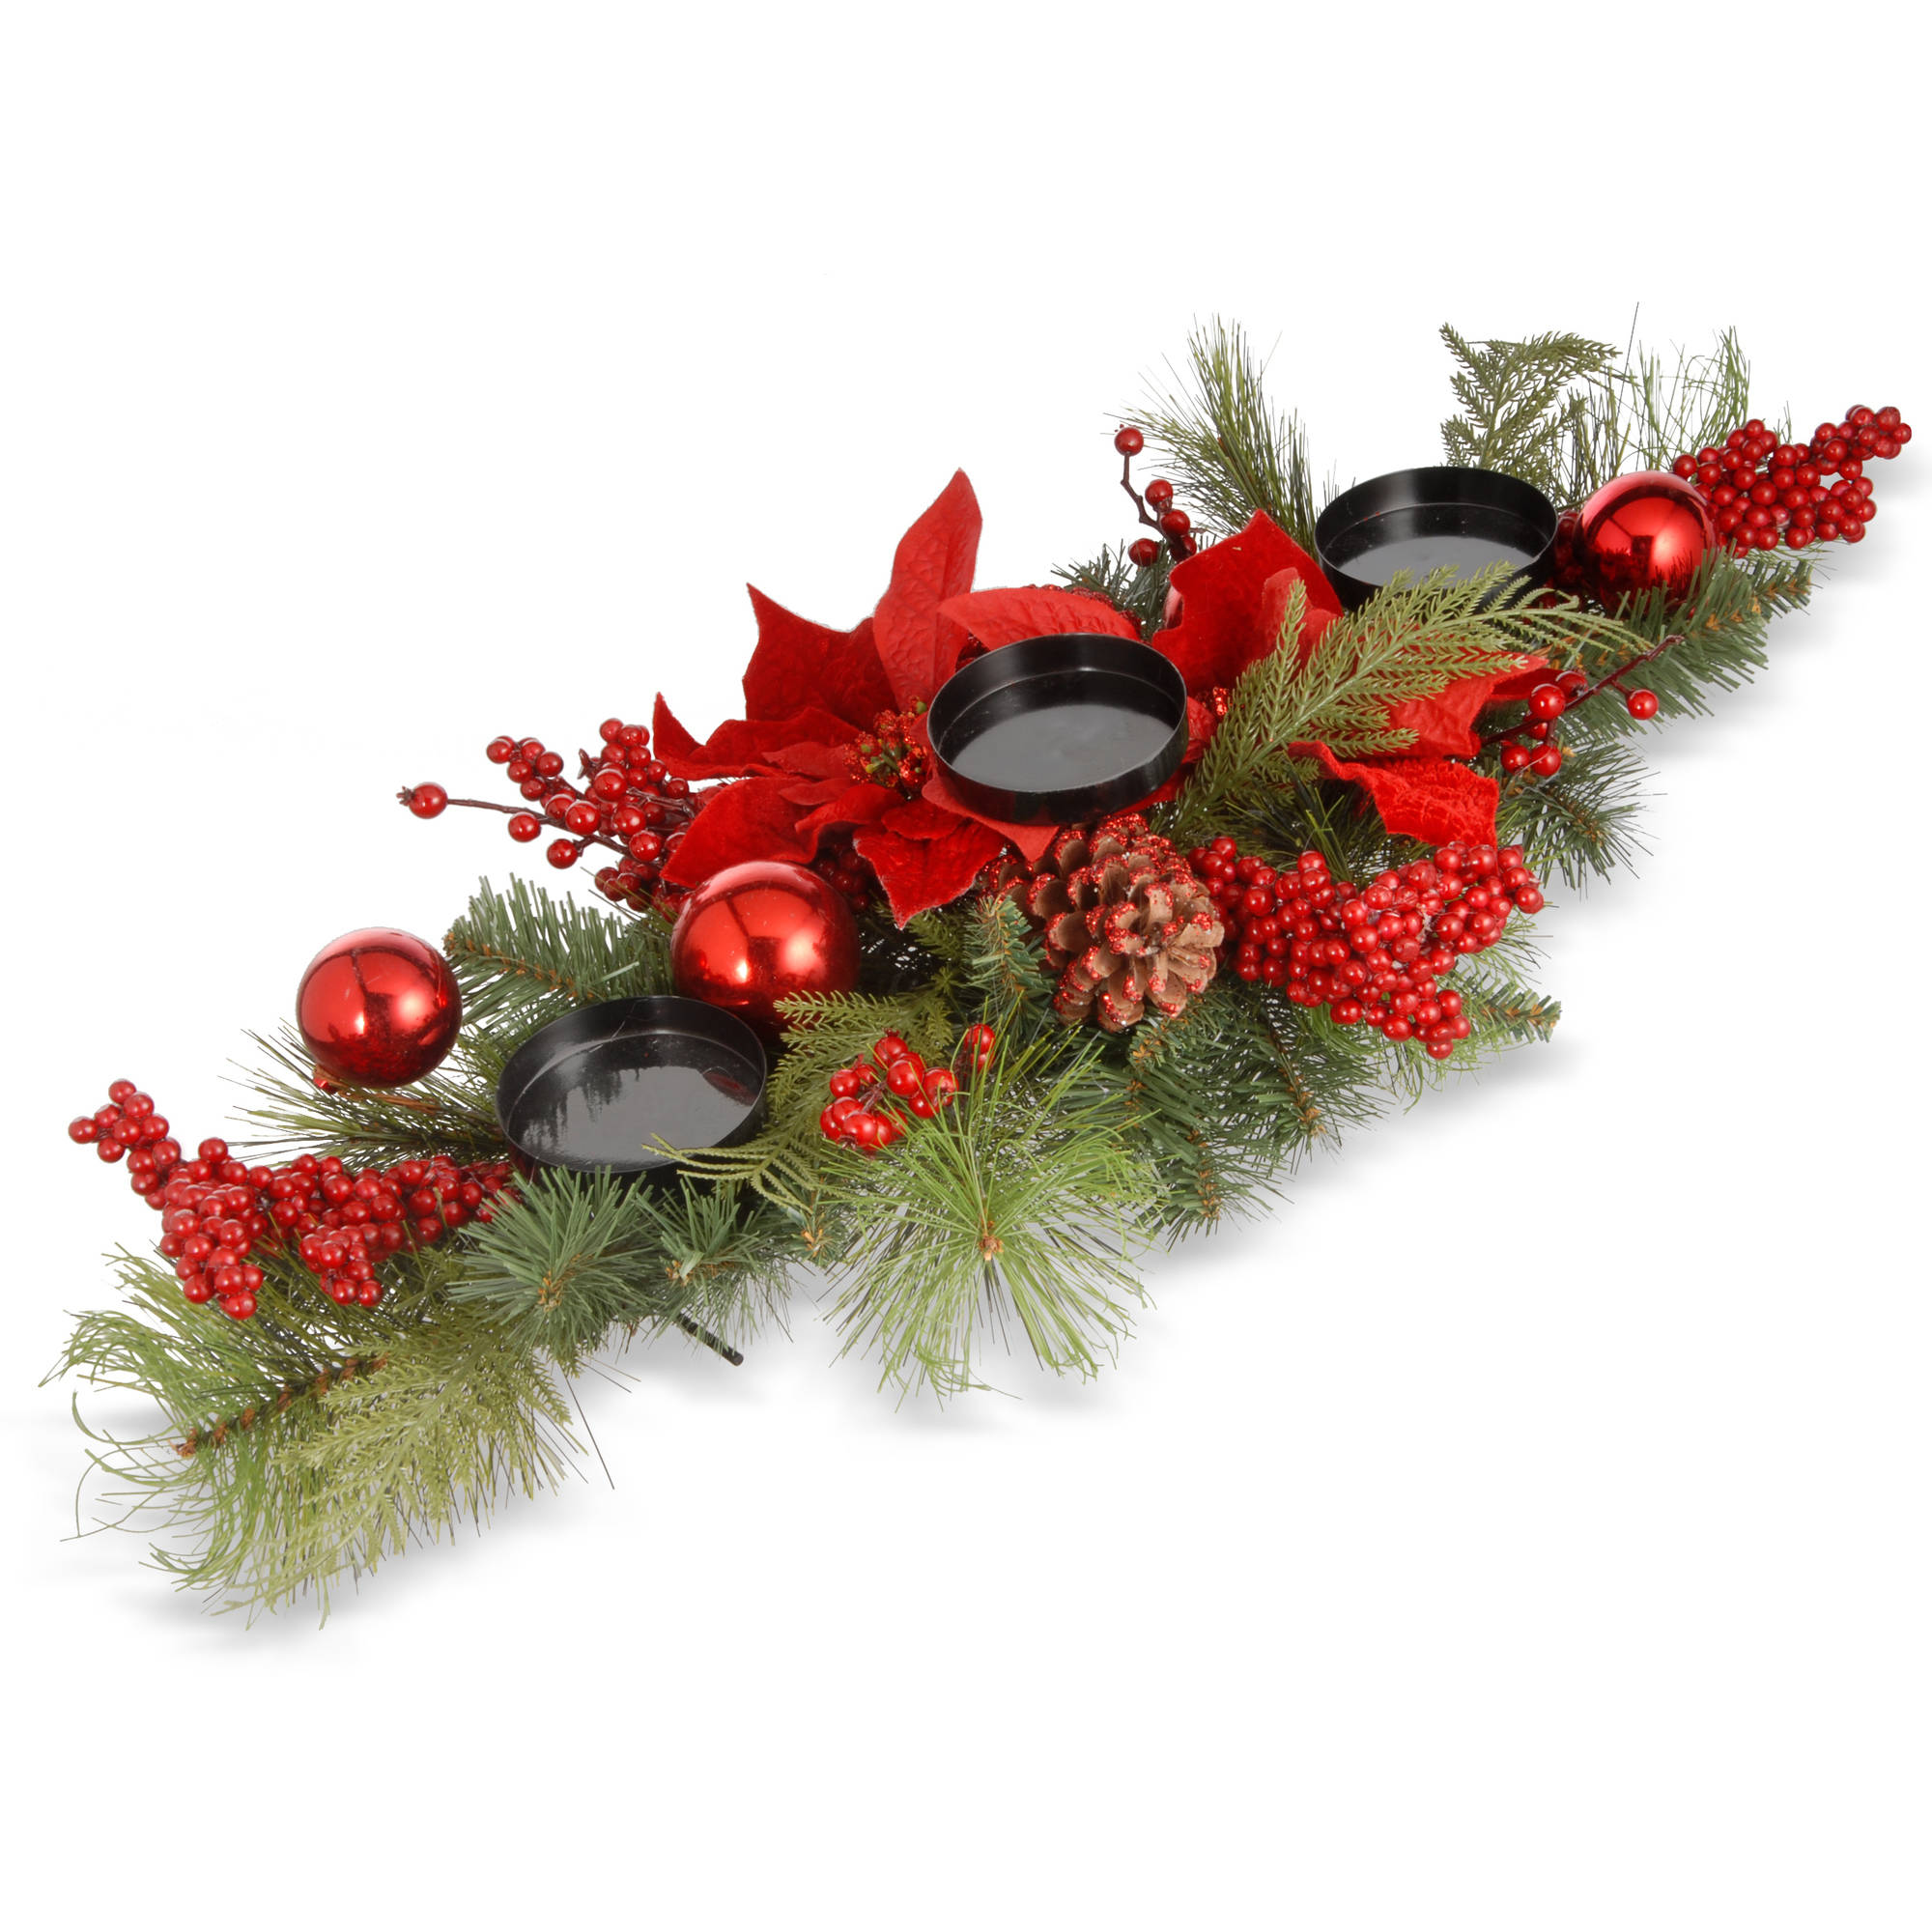 CHRISTMAS – Indoor Decorations For Christmas 10